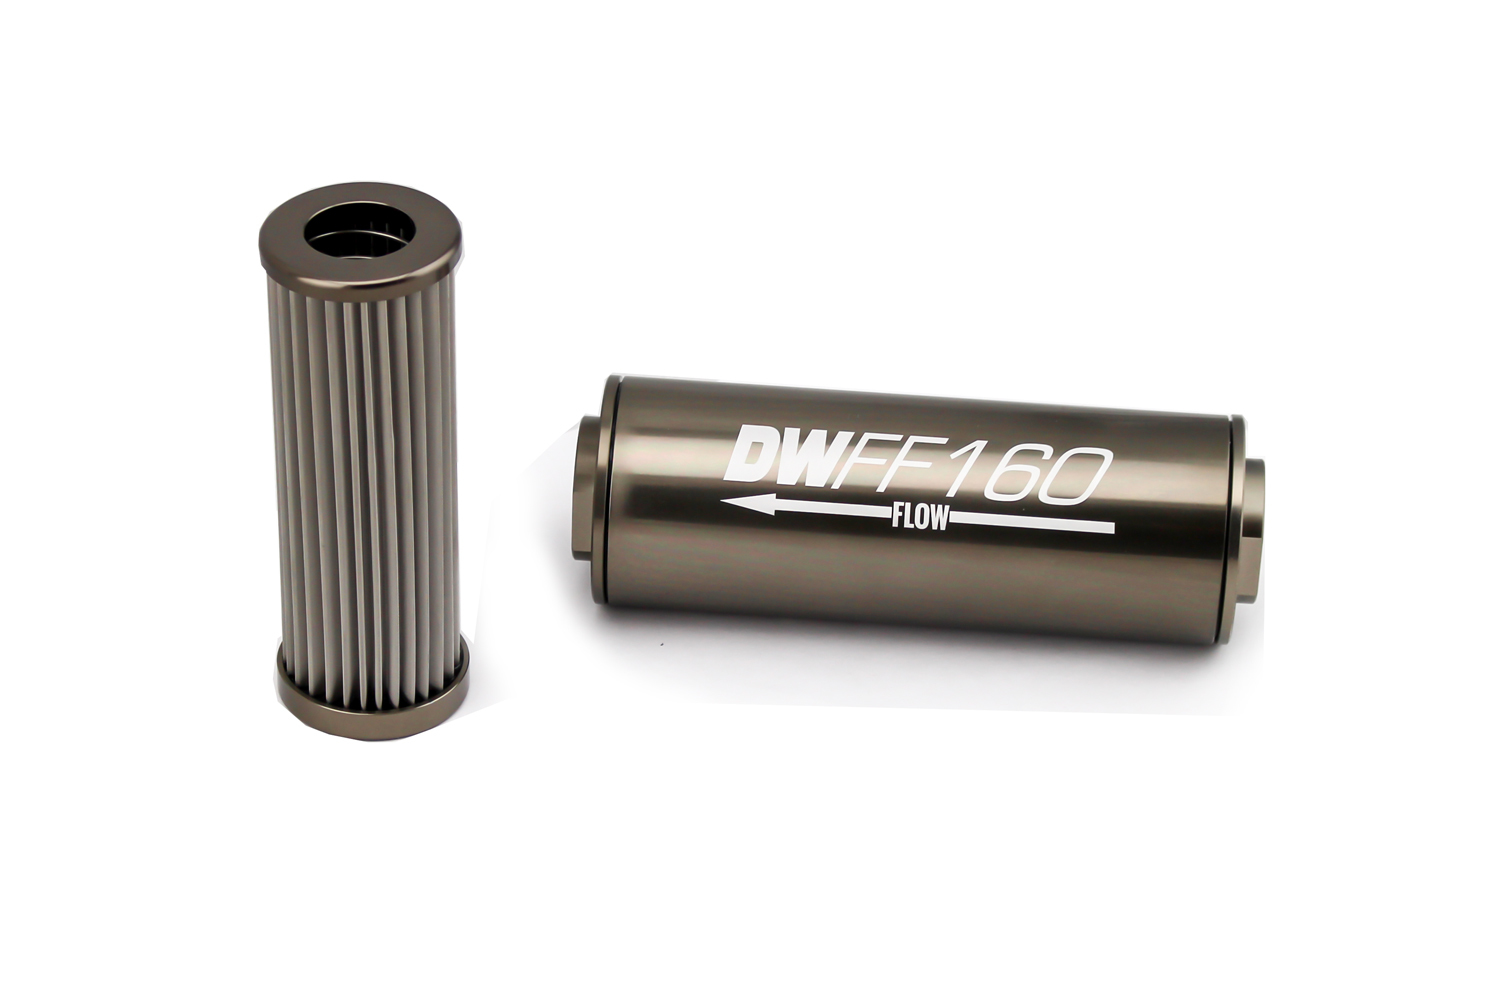 Deatschwerks 8-03-160-010K Fuel Filter, In-Line, 10 Micron, Stainless Element, 8 AN Female Inlet, 8 AN Female Outlet, 160 mm Long, Aluminum, Titanium Anodize, Each